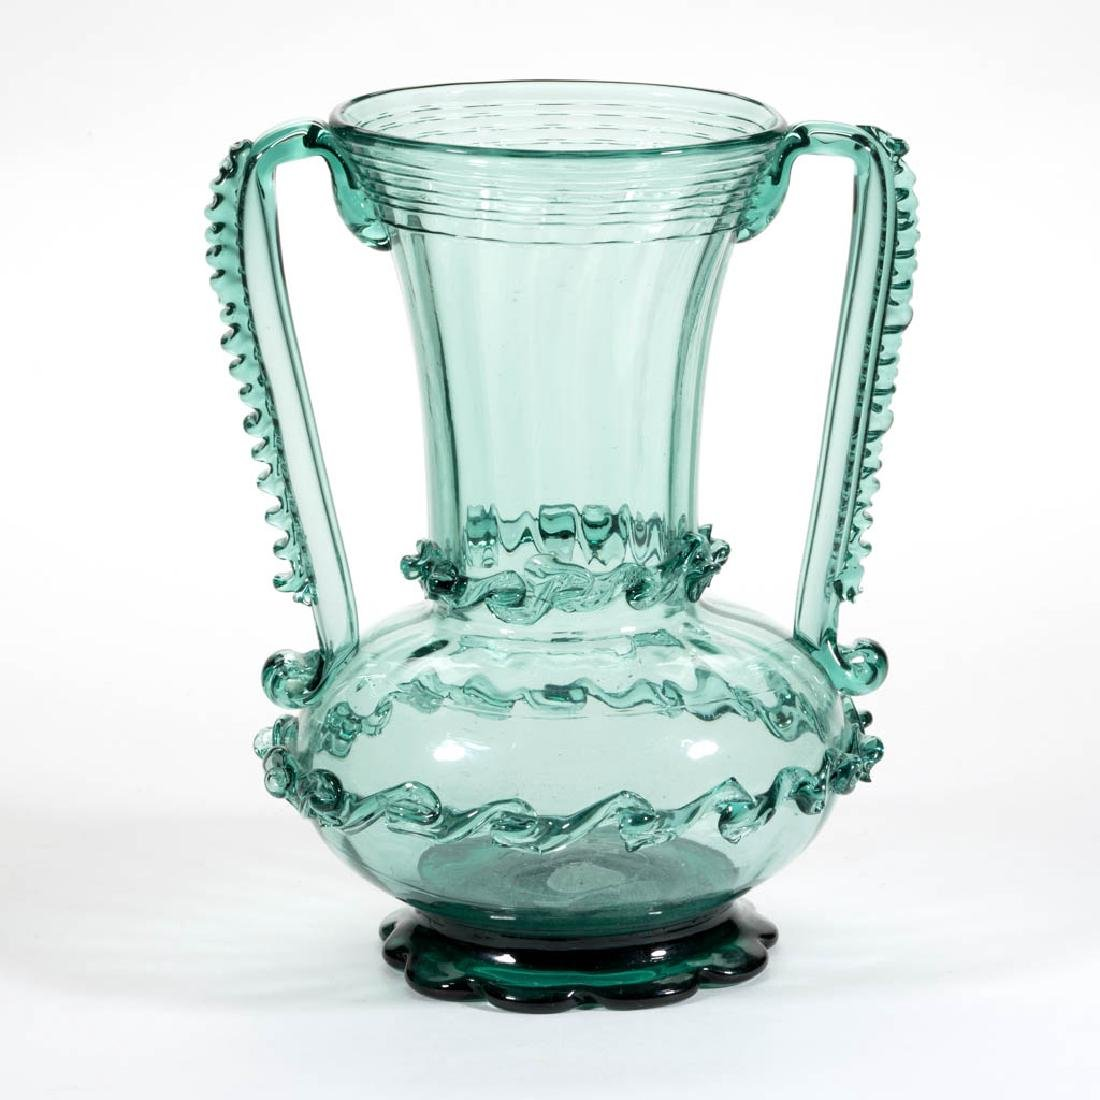 PATTERN-MOLDED AND DECORATED TWO-HANDLE VASE